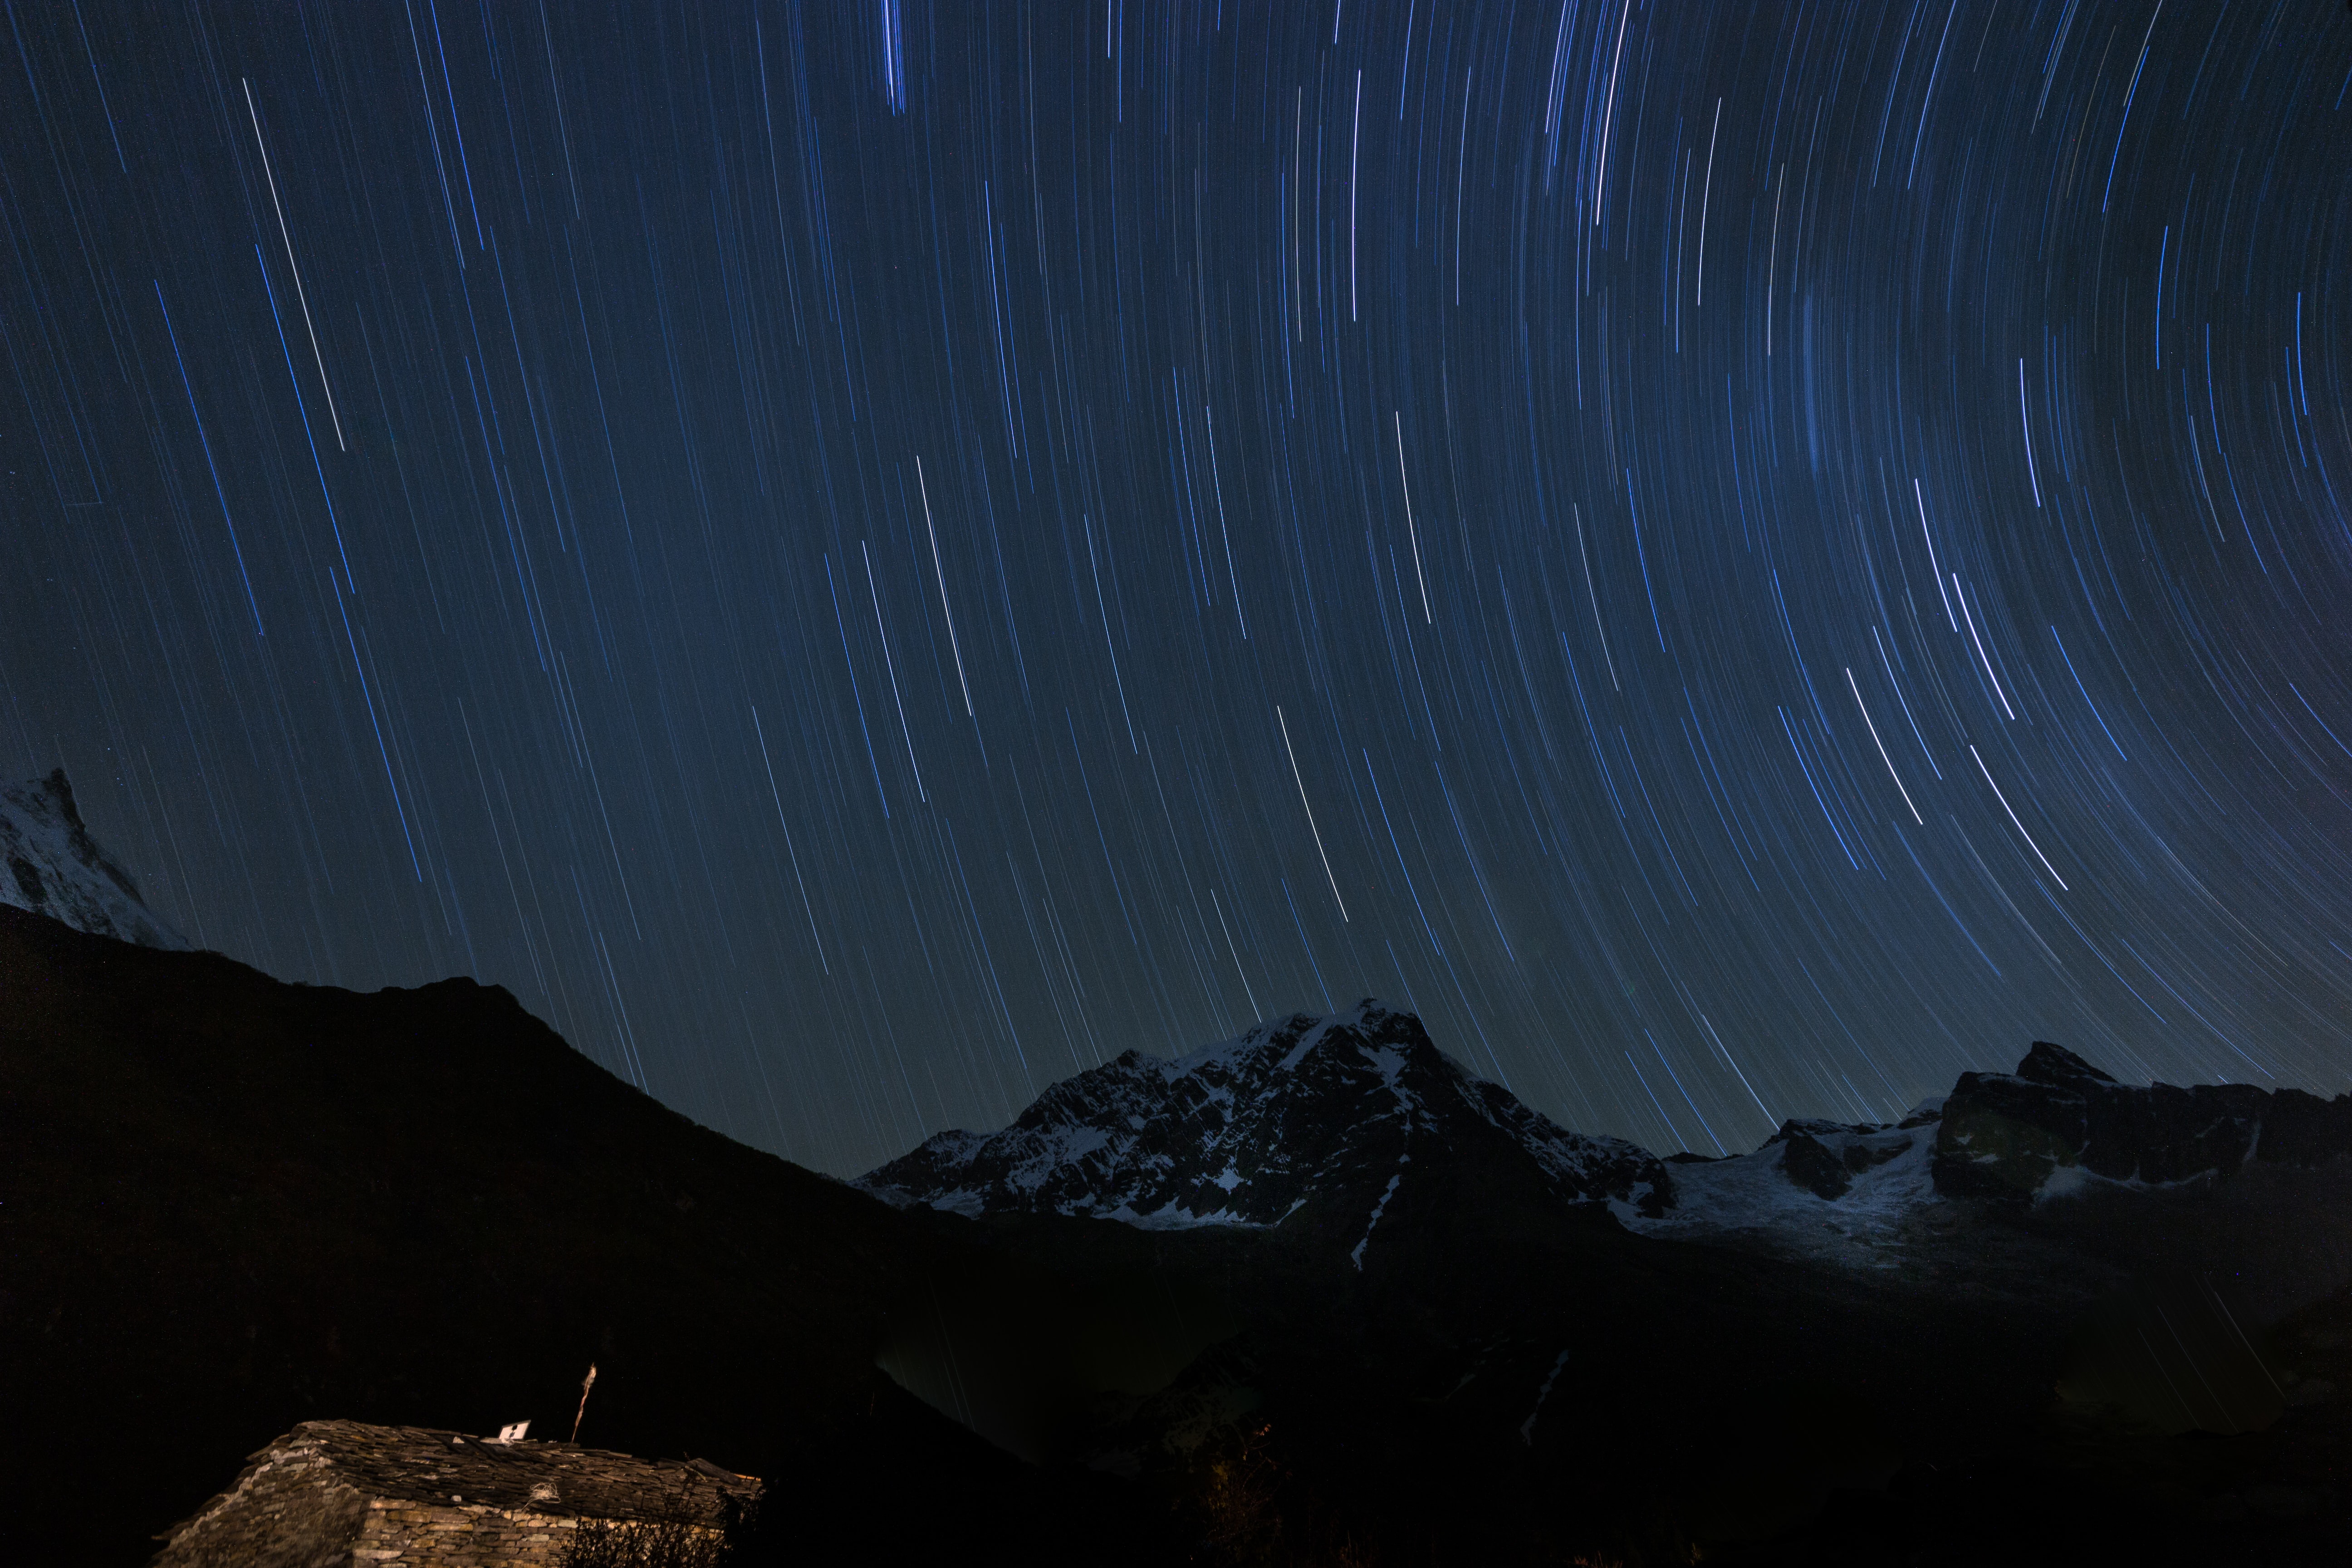 mountains under starry night